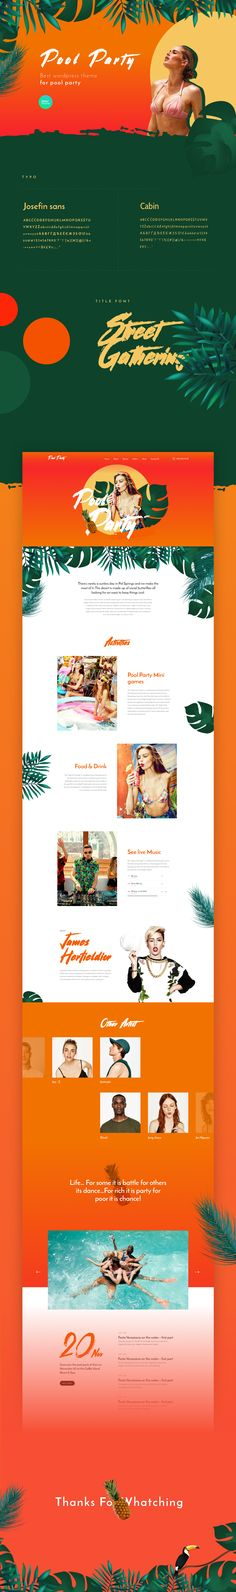 Pool Party – Landing Page For Free Design template on Behance